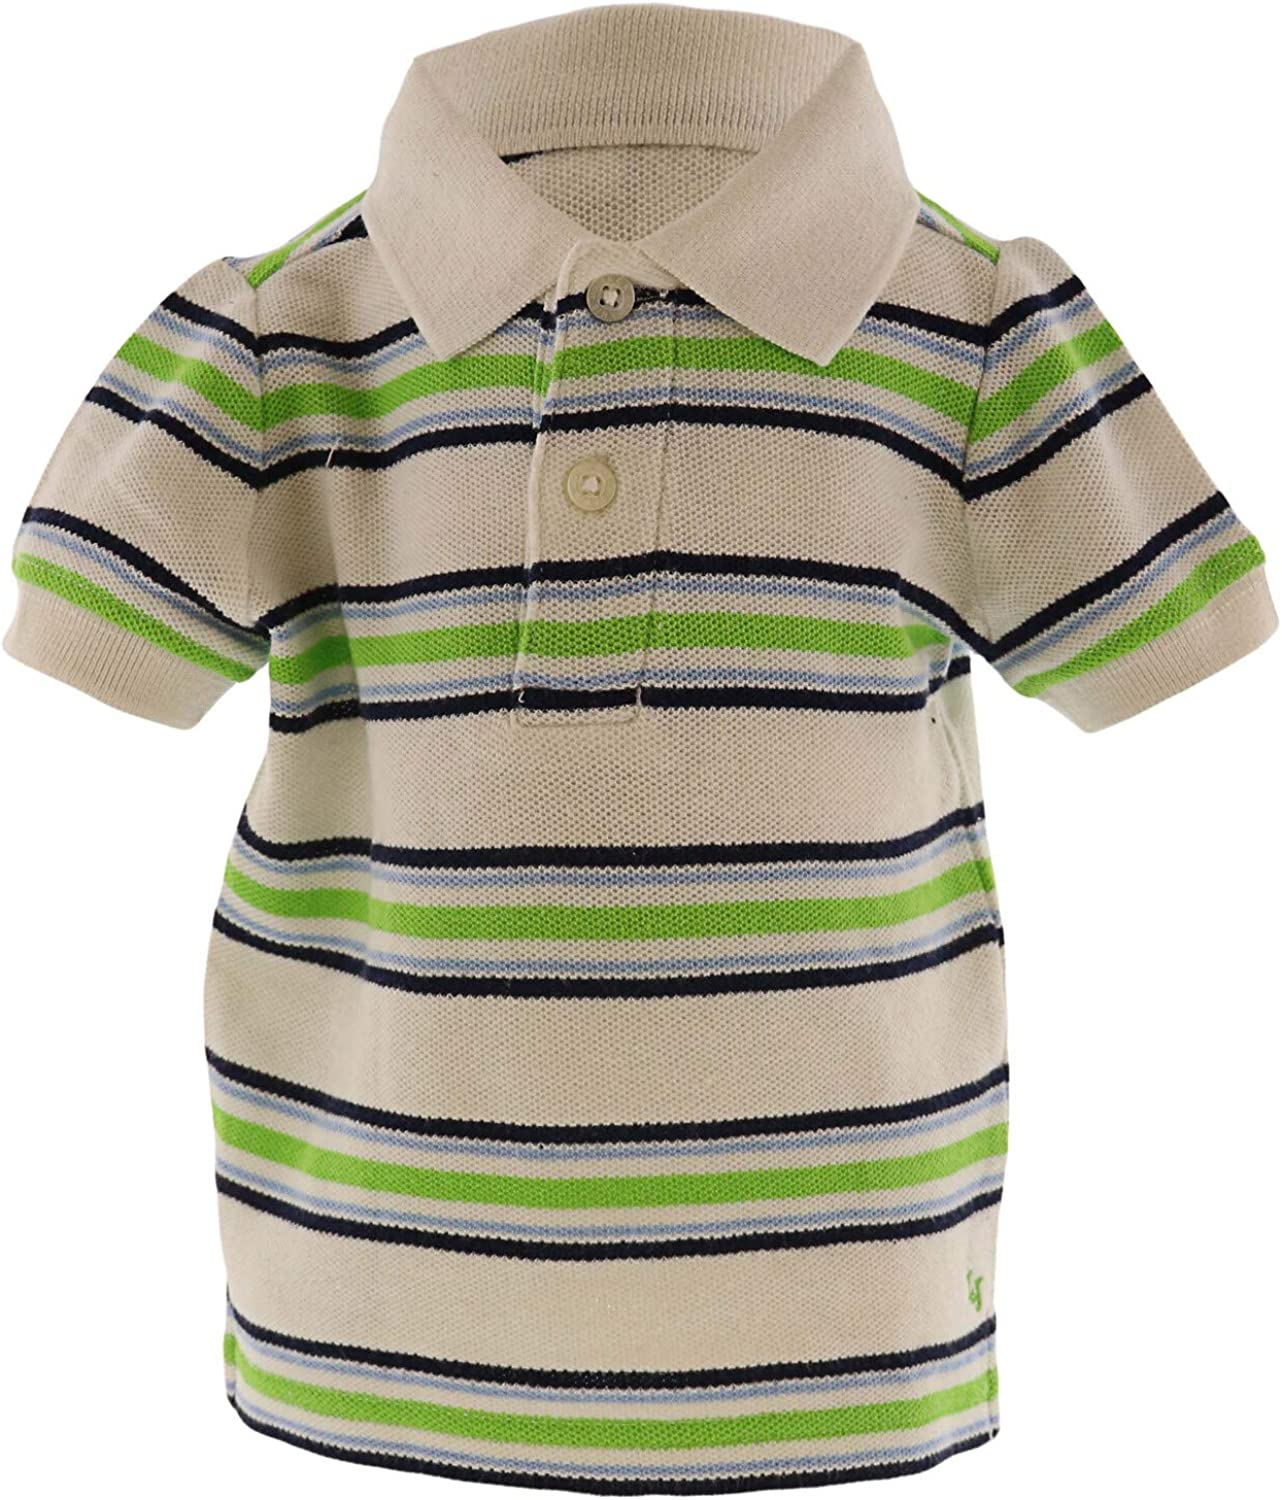 Janie and Jack Boy's Striped Polo - 3-6 Months - White/Lime/Navy